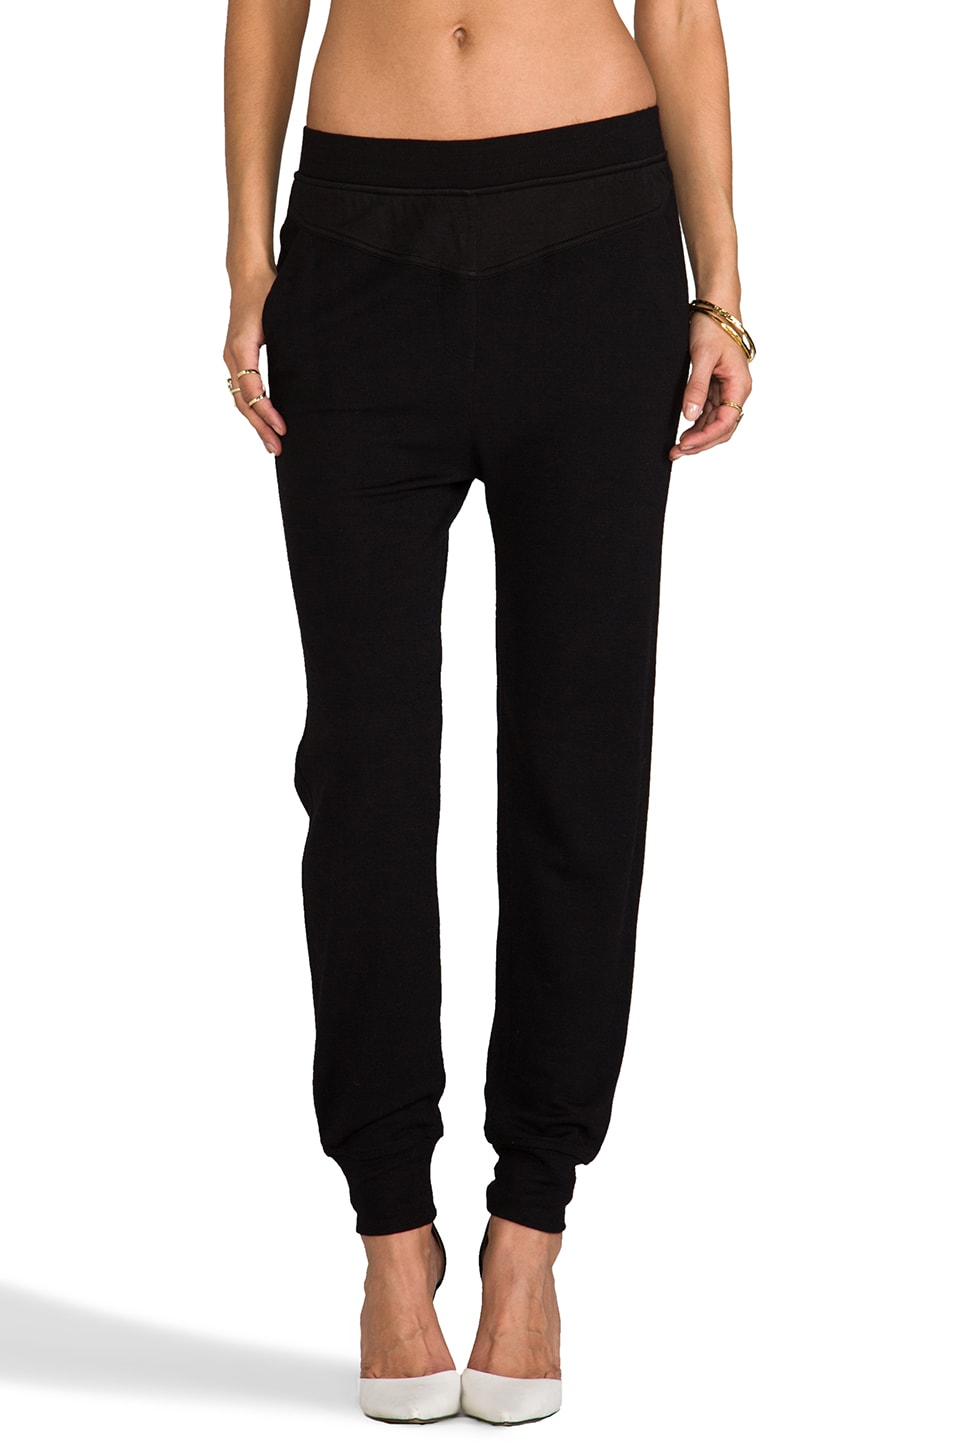 T by Alexander Wang Long John Sweatpants in Black